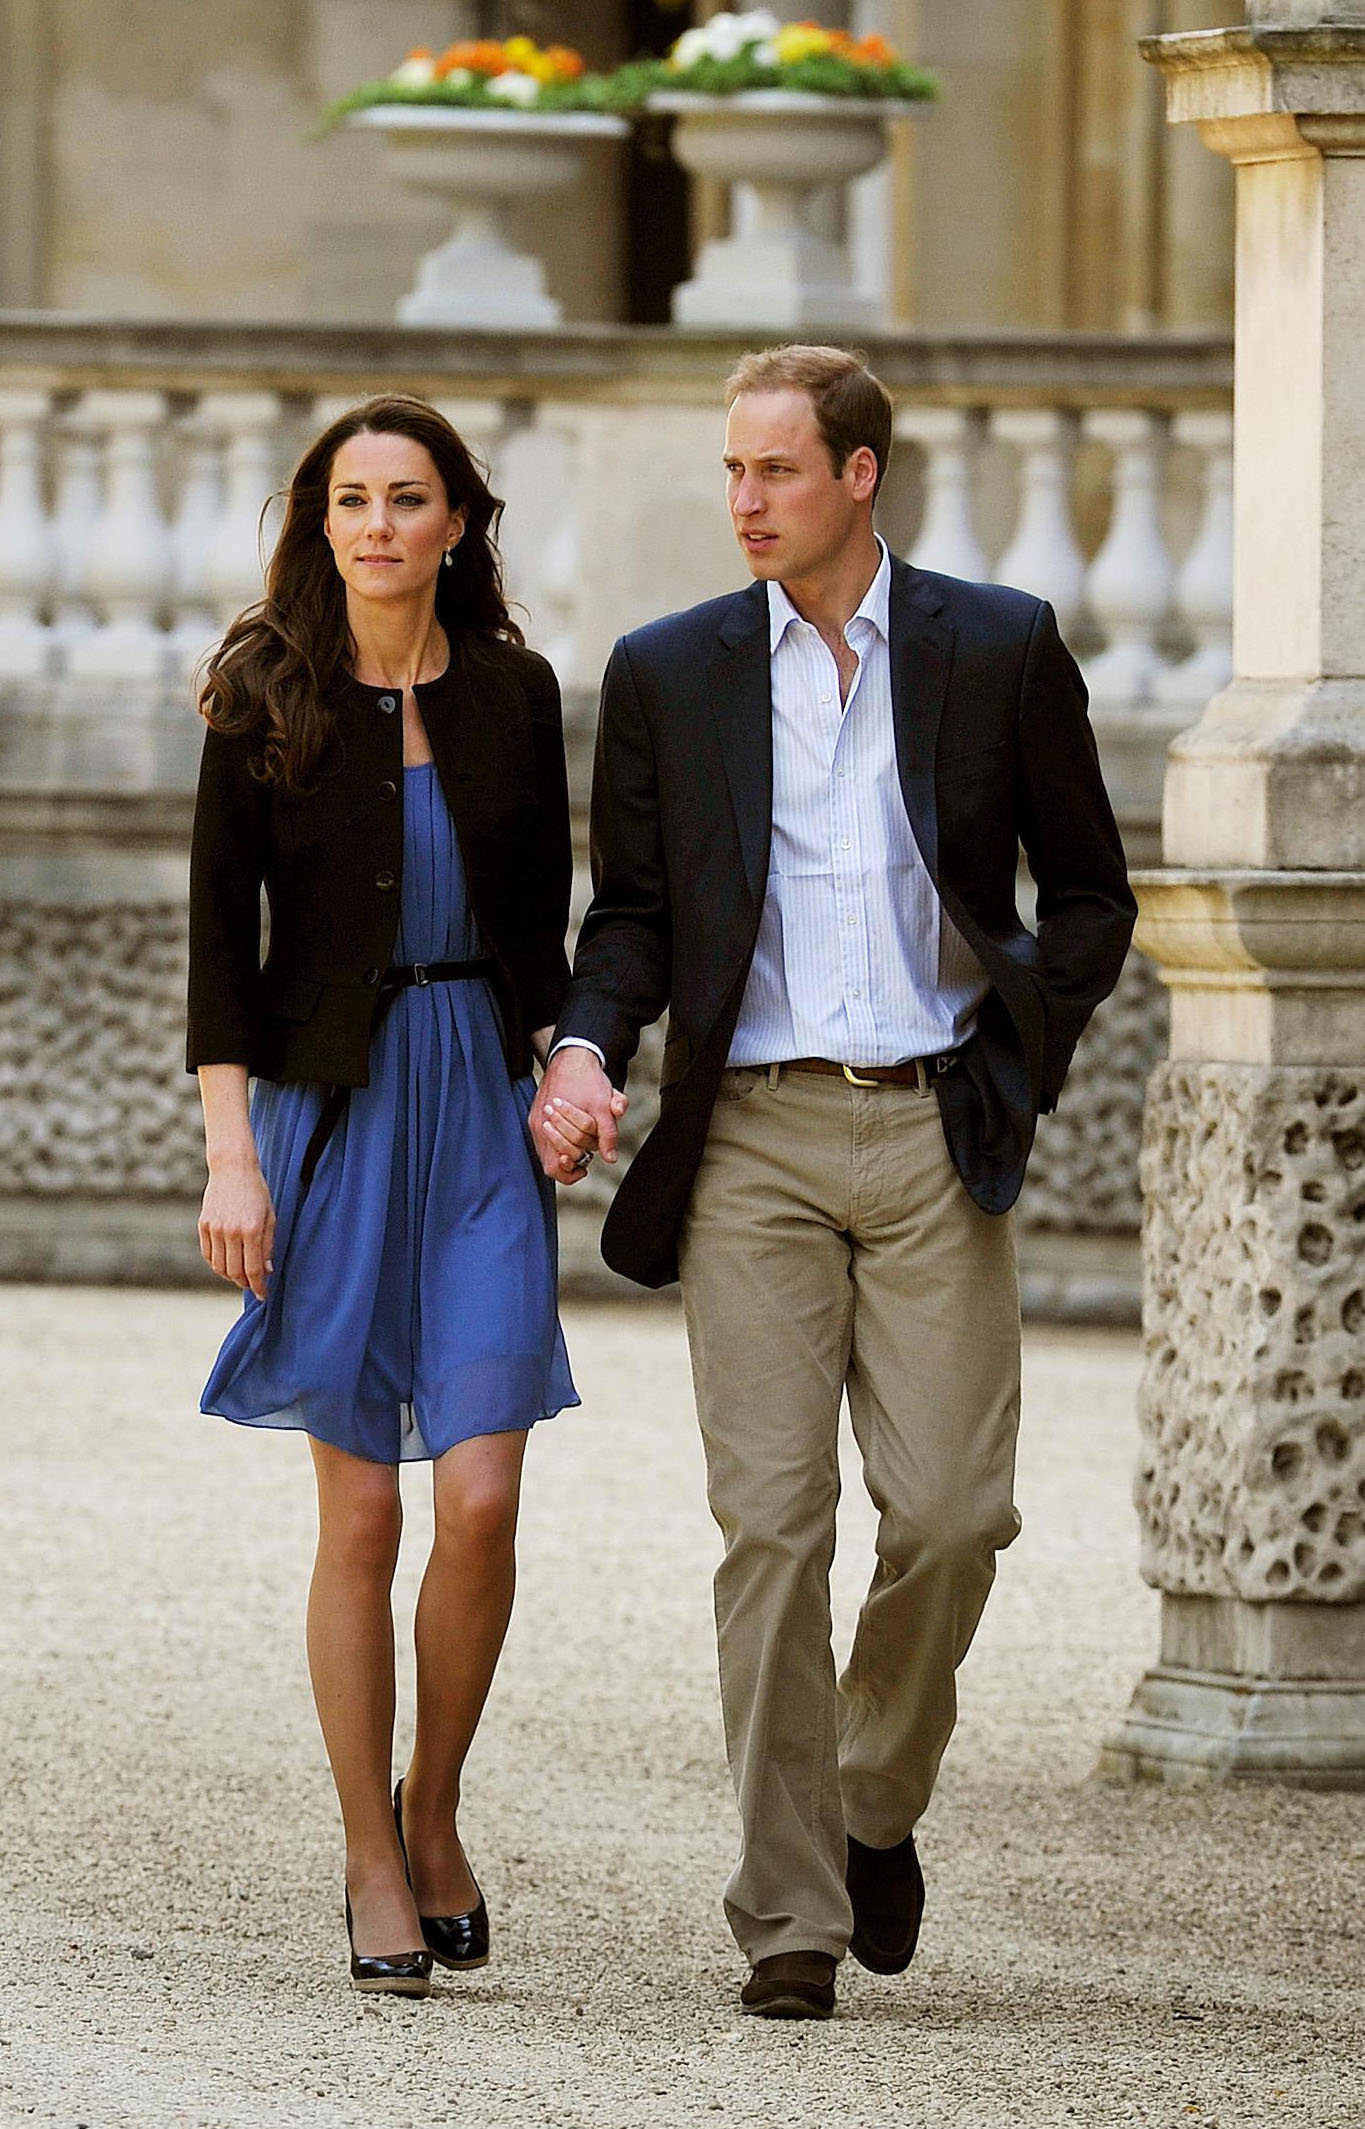 <strong>No Ordinary Saturday Stroll</strong>                                   The morning after her wedding, on April 30, 2011, Middleton opted for a $90 blue Zara dress, which she wore belted under a black blazer and wedge pumps. Photographers snapped this image as the couple left Buckingham Palace to board a helicopter.